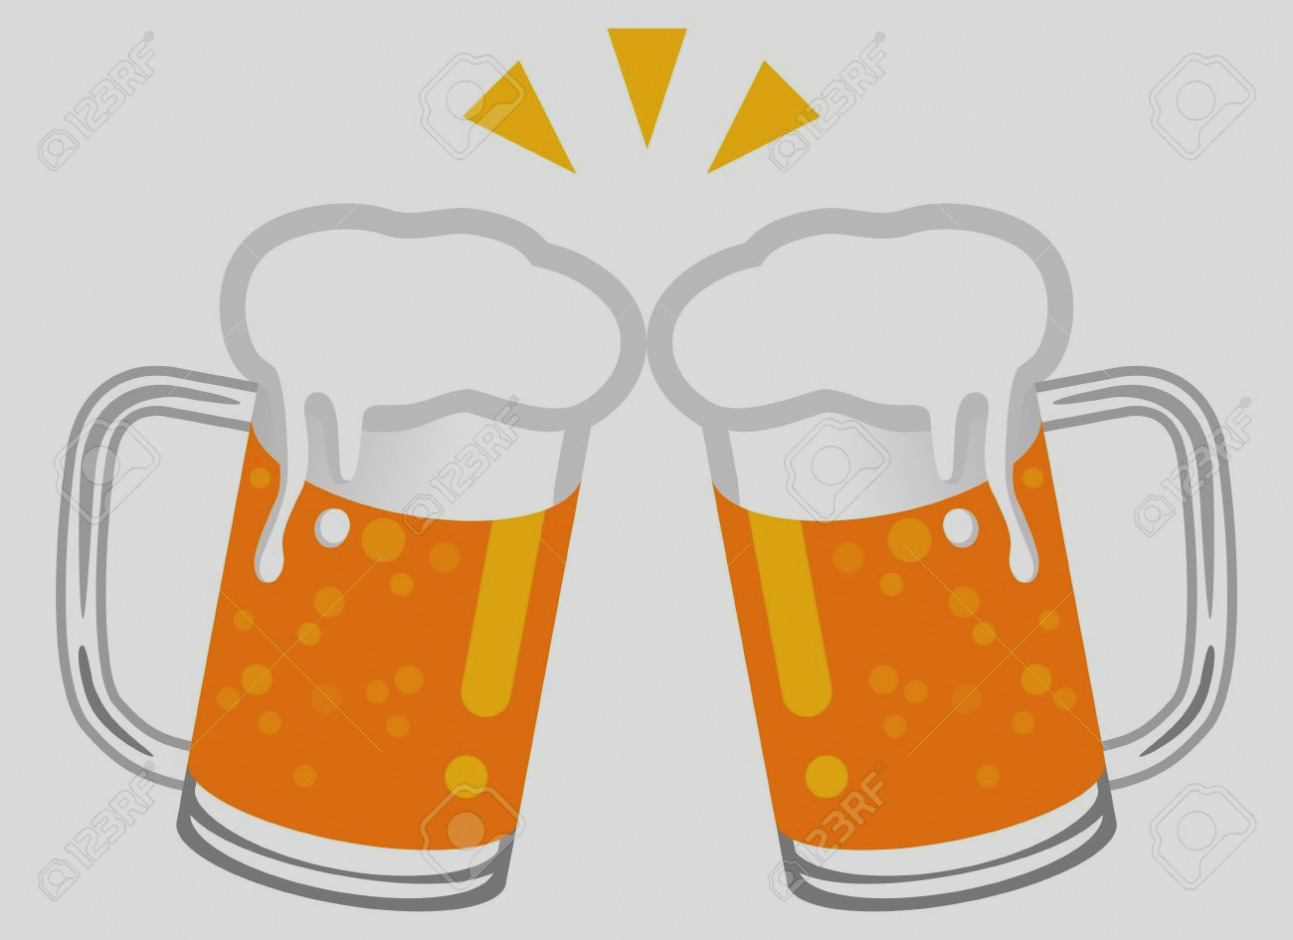 Cheers clipart alcohol. Gallery beer clip art